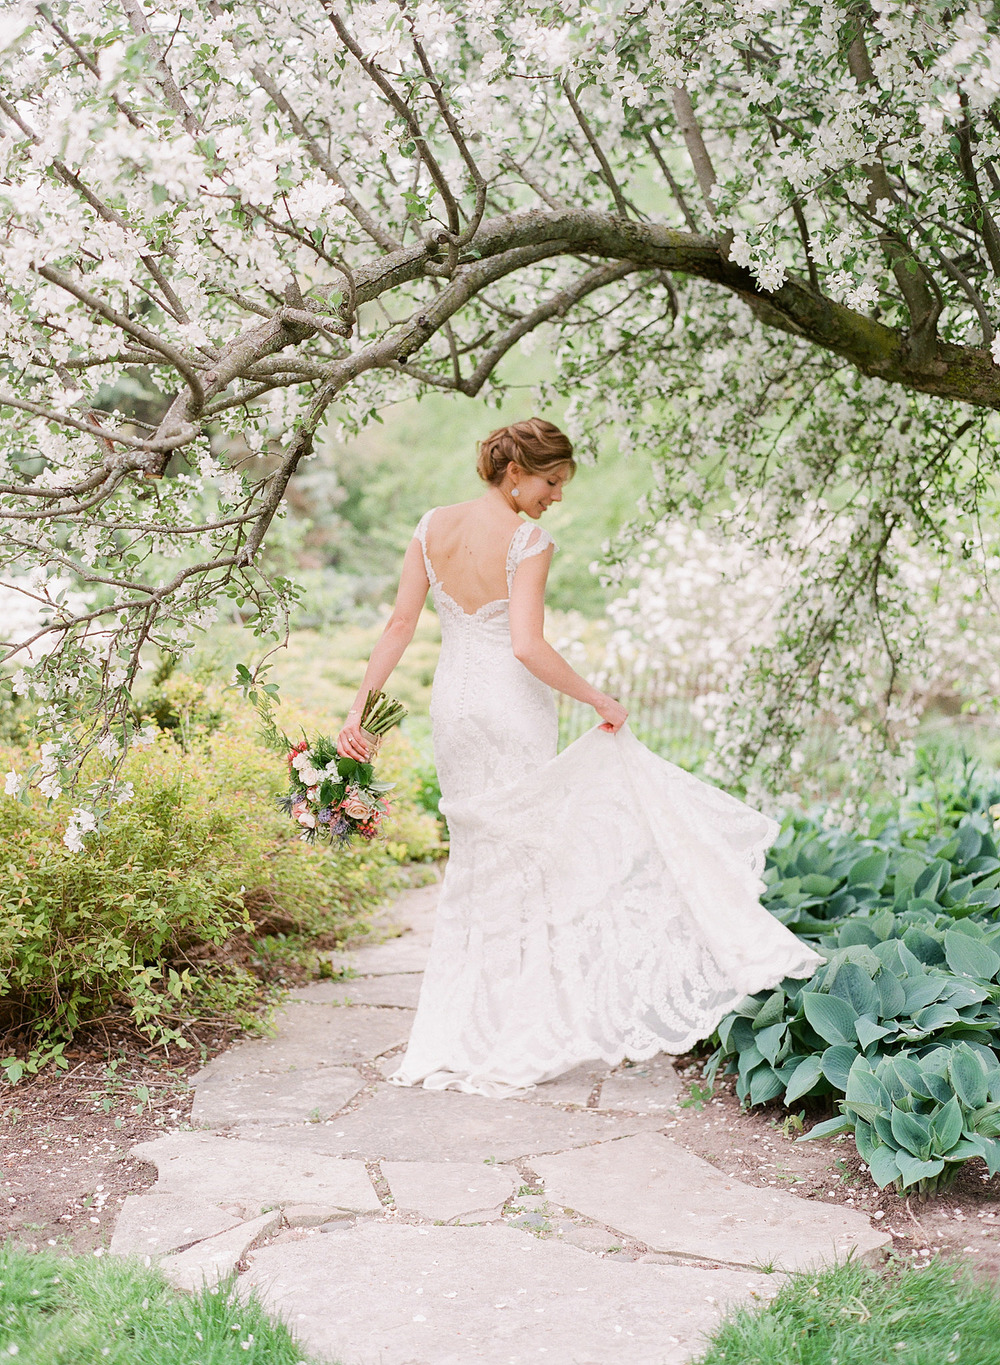 bride twirls her lace wedding dress with cap sleeves under blooming trees at her springtime wedding at Northwind Perennial Gardens - a beautiful wisconsin wedding venue - while destination wedding photographer Lexia Frank photographs her wedding on film